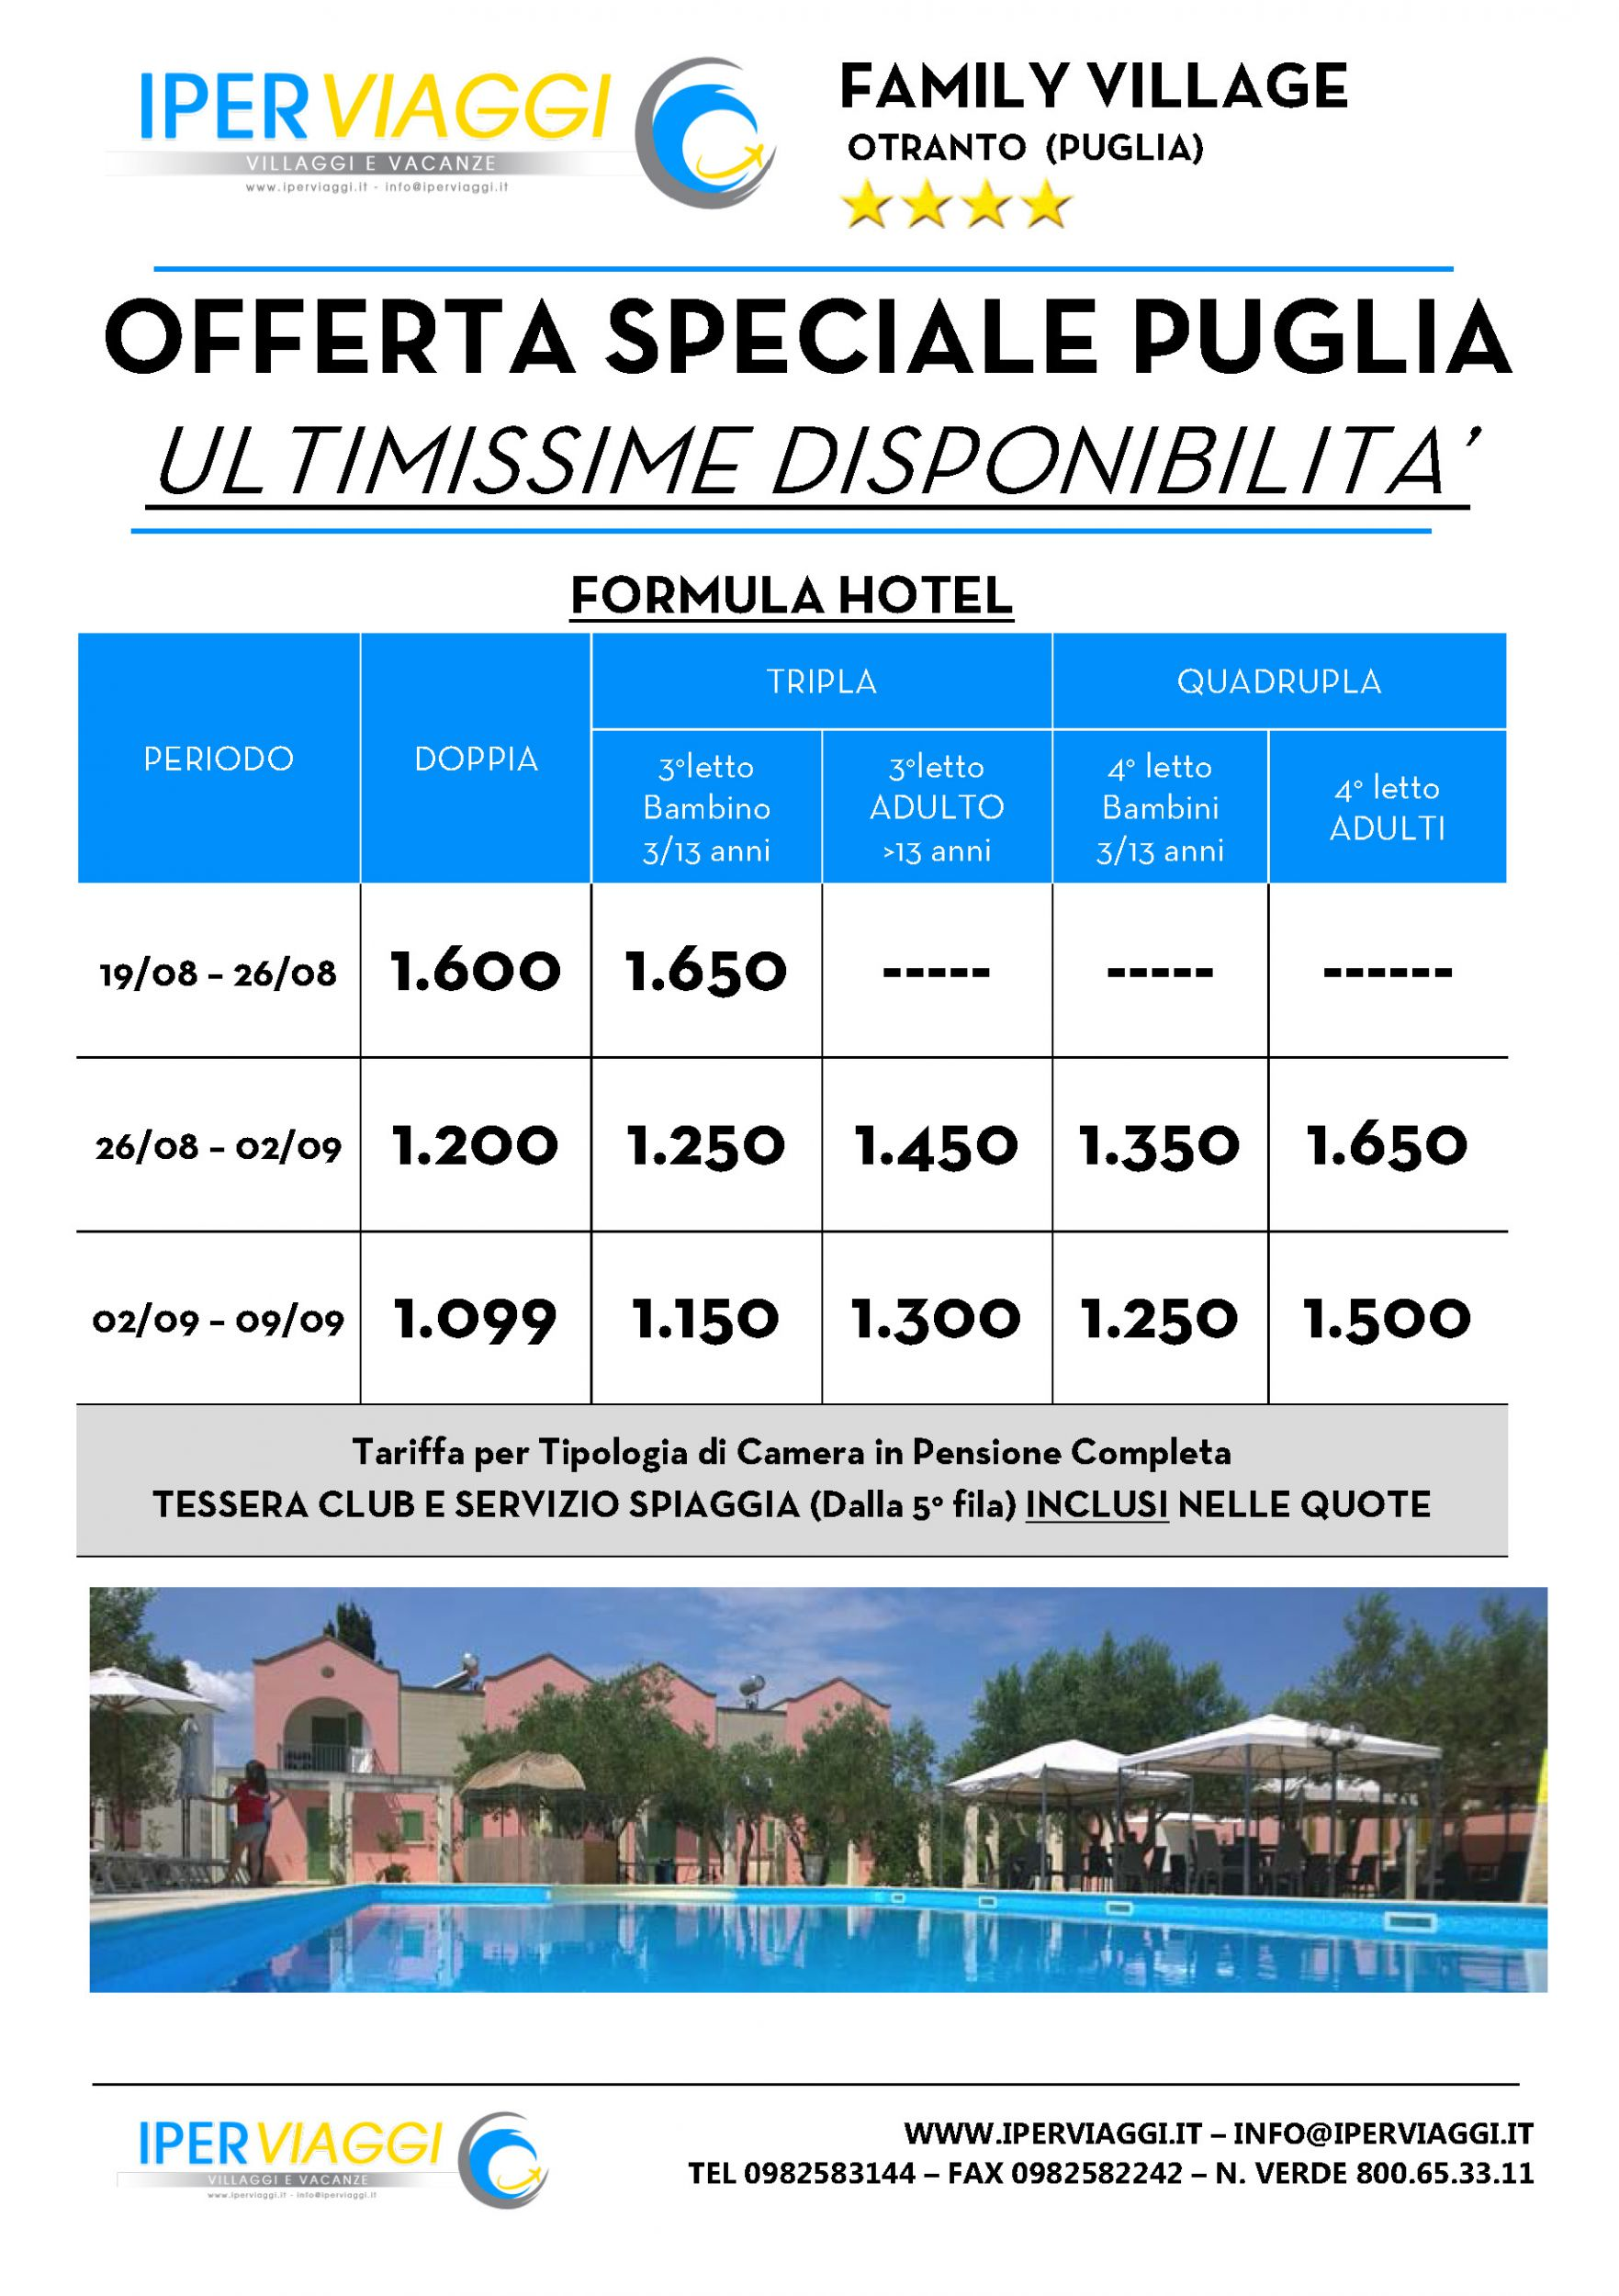 Ultime Disponibilità Last Minute Family Village